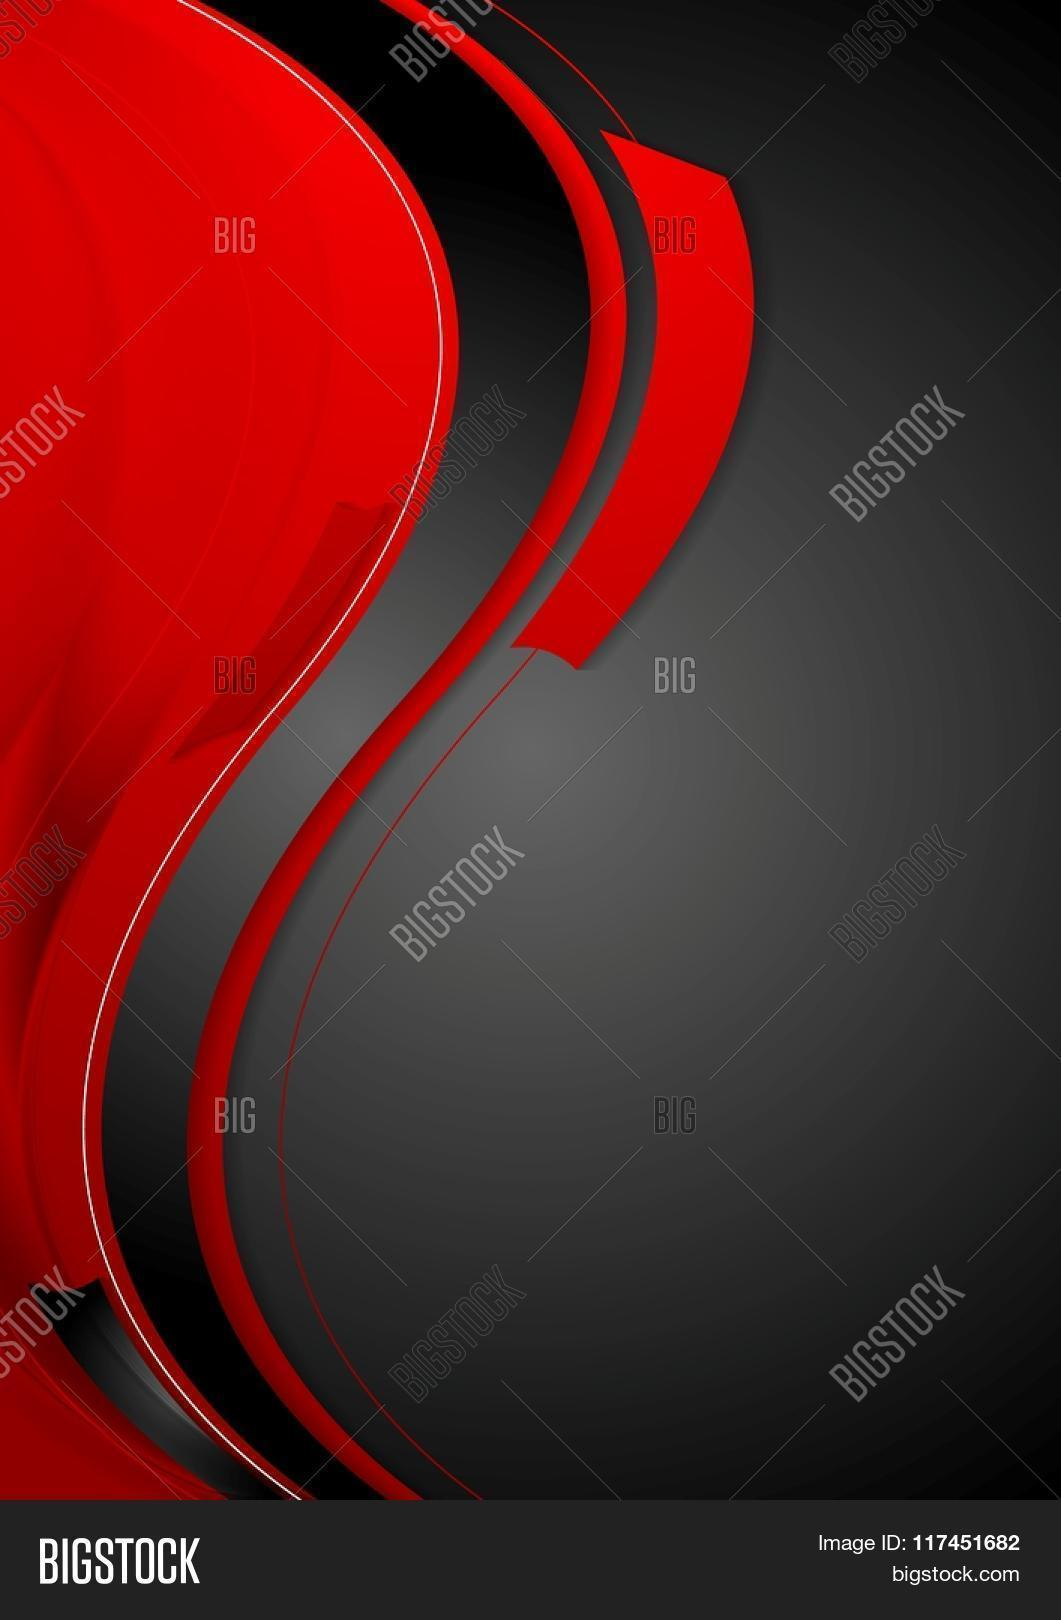 Bright Contrast Red Black Wavy Background Vector Graphic Design